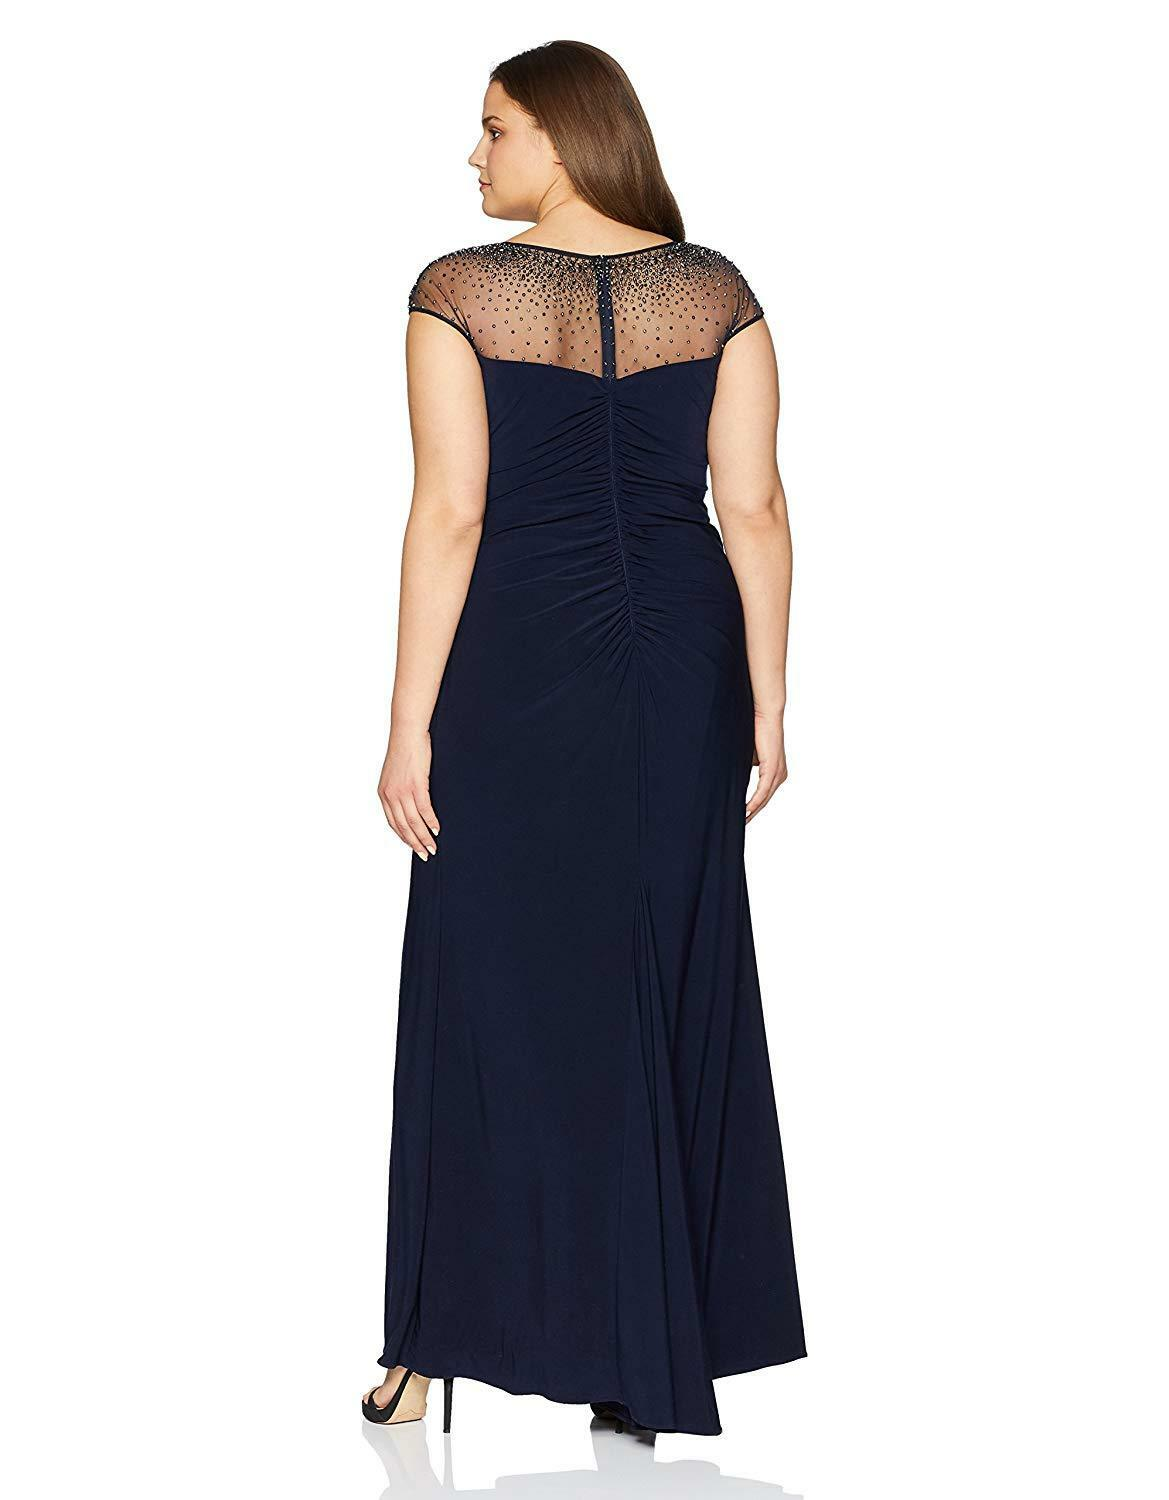 NEW XSCAPE XSCAPE XSCAPE Navy bluee Beaded Mesh Faux Wrap Draped Stretch Ruched Jersey Gown 18W 539834